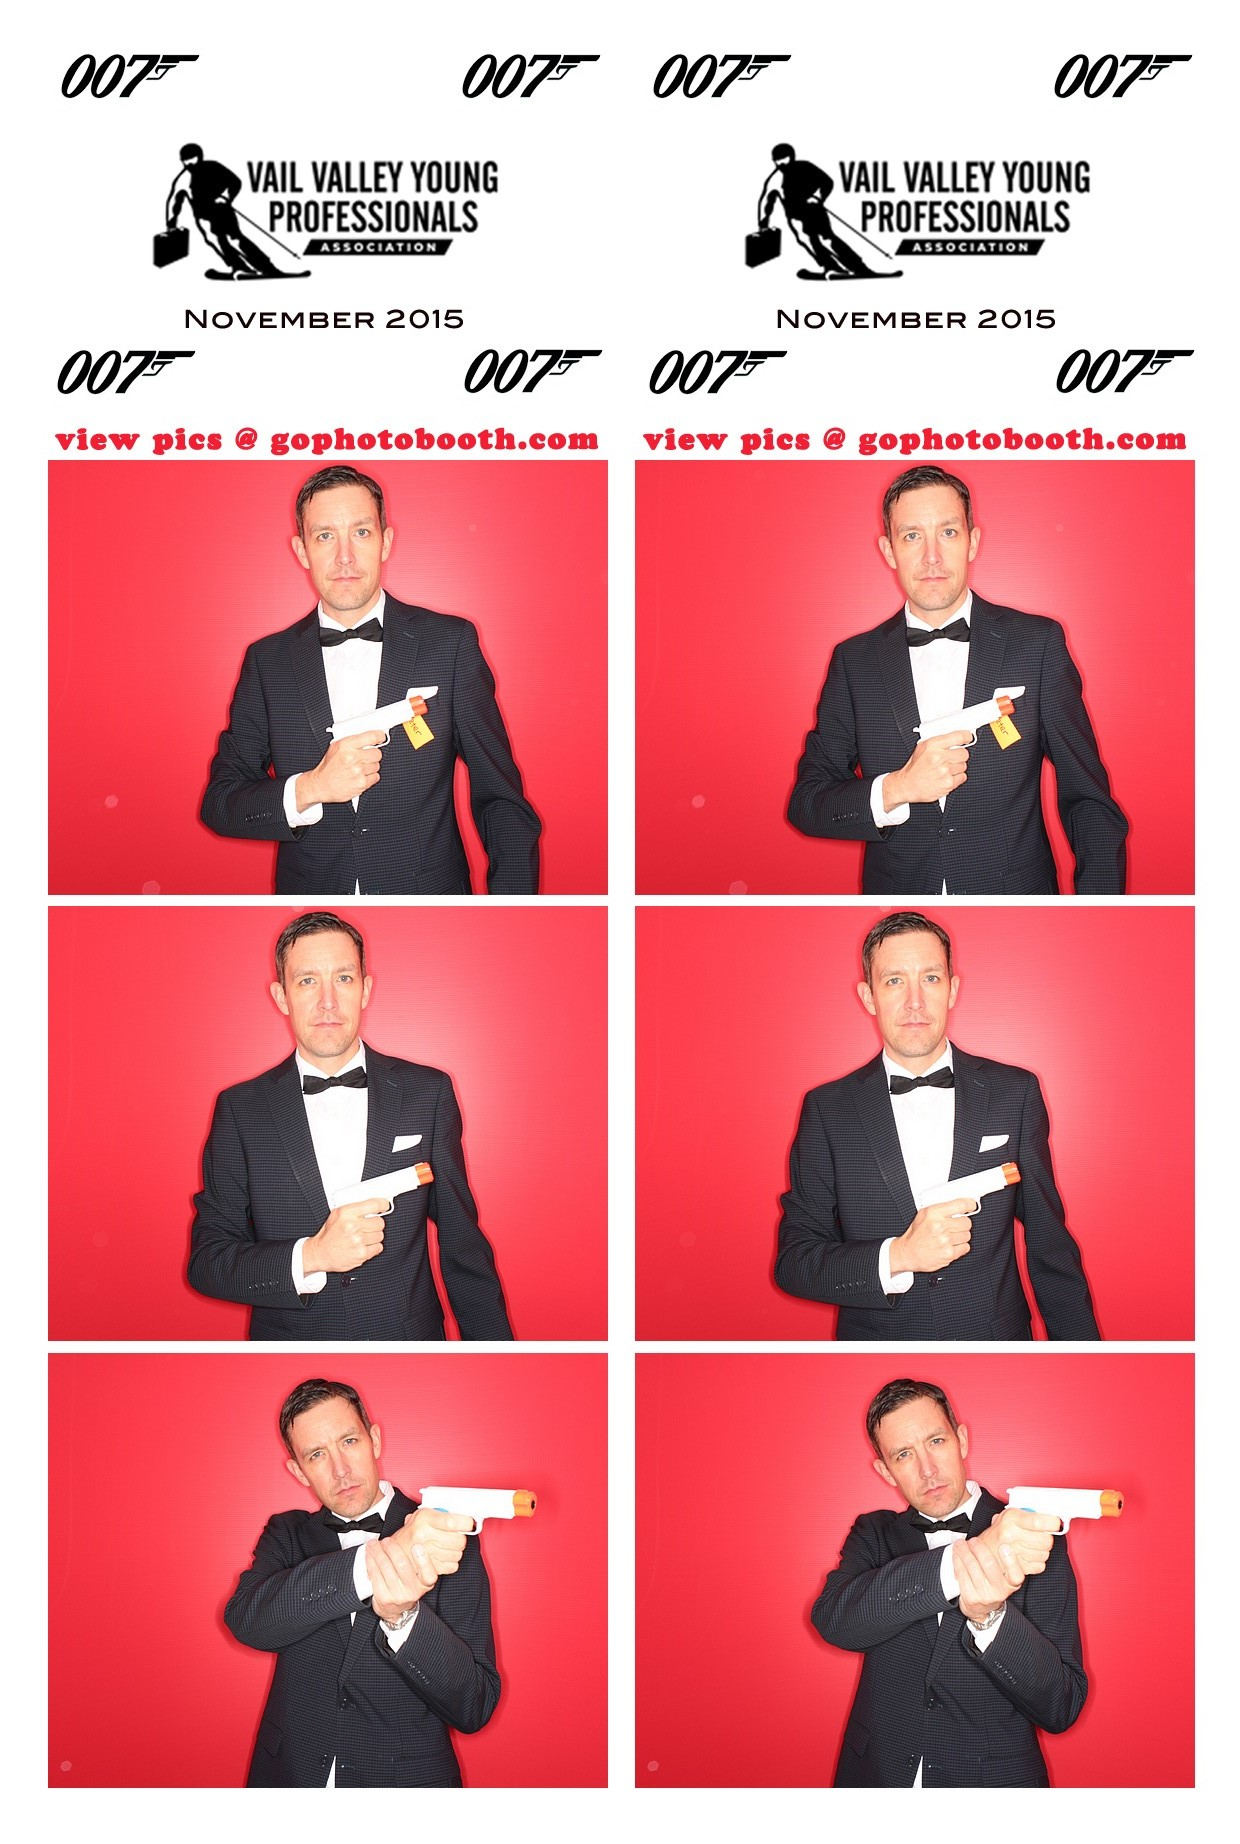 VVYPA 007 Bol Photo Booth 11/05/15